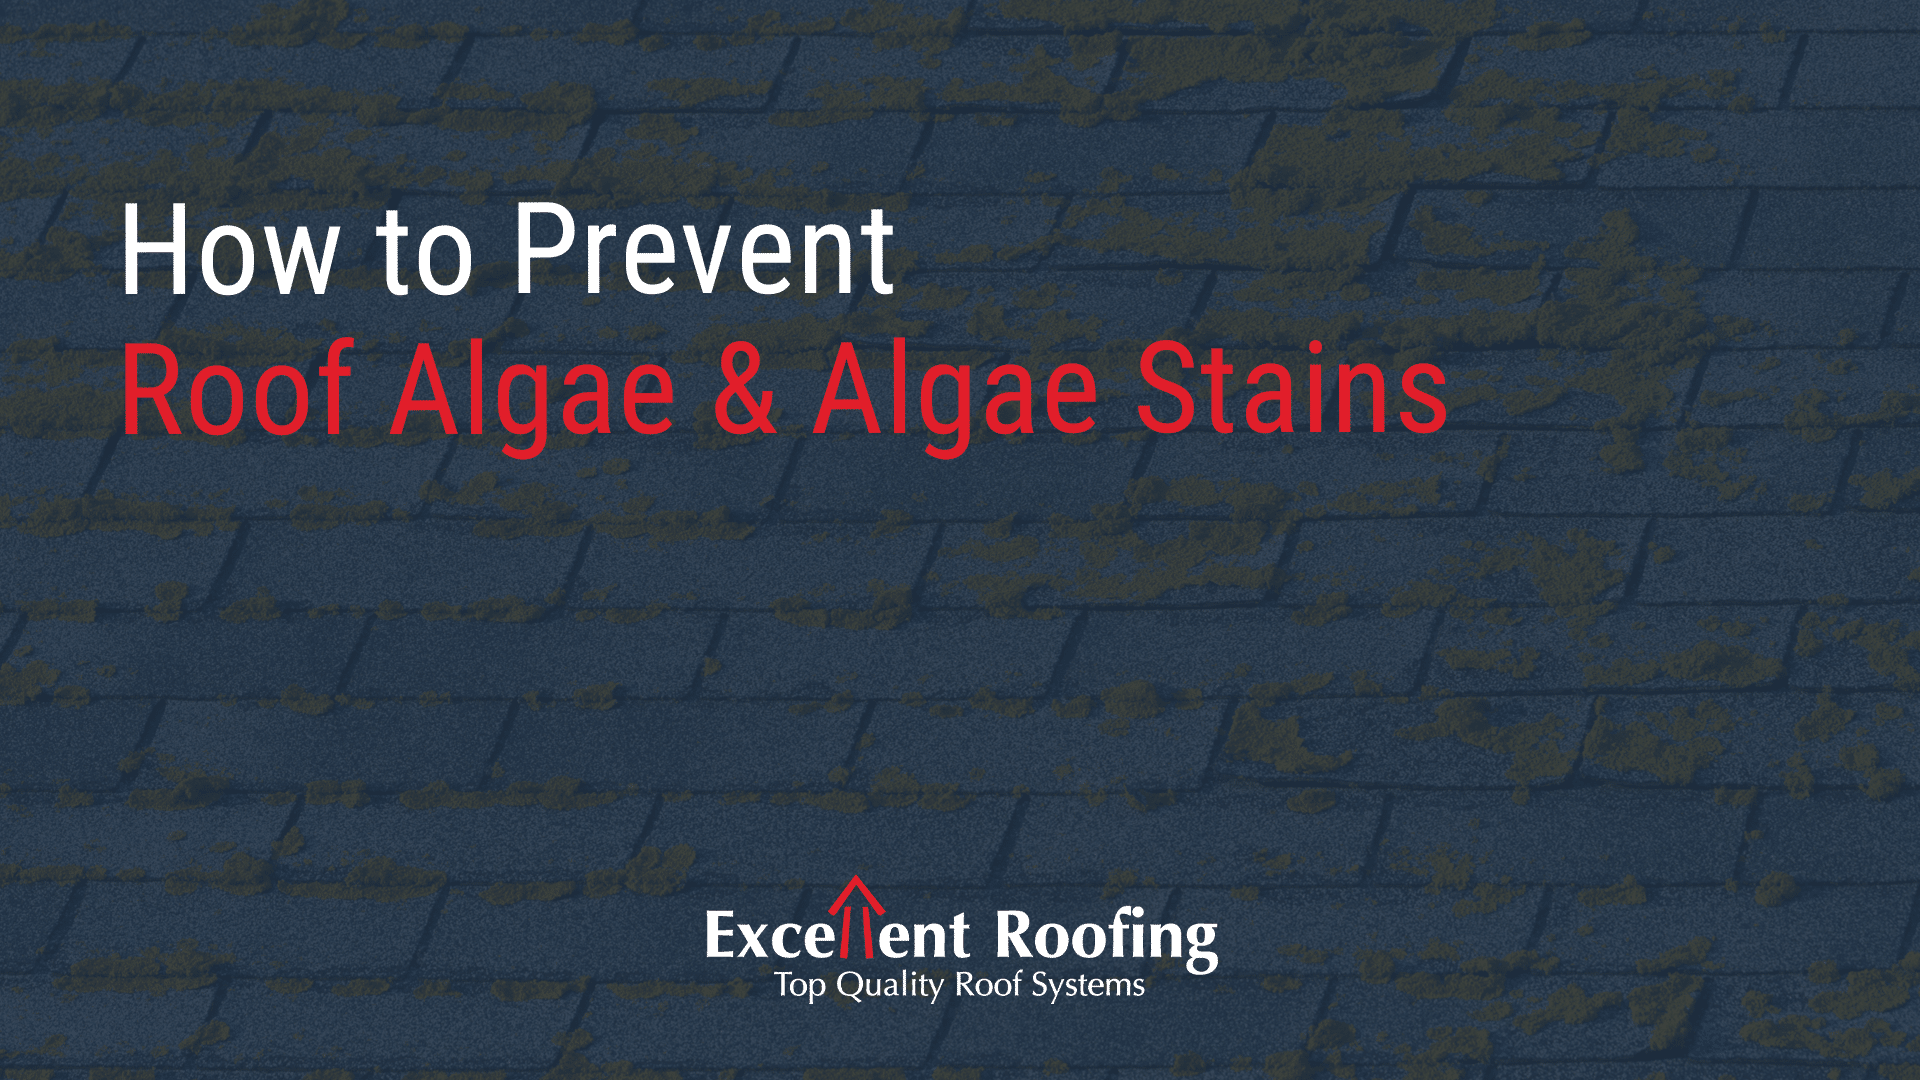 How To Prevent Roof Algae And Algae Stains Excellent Roofing